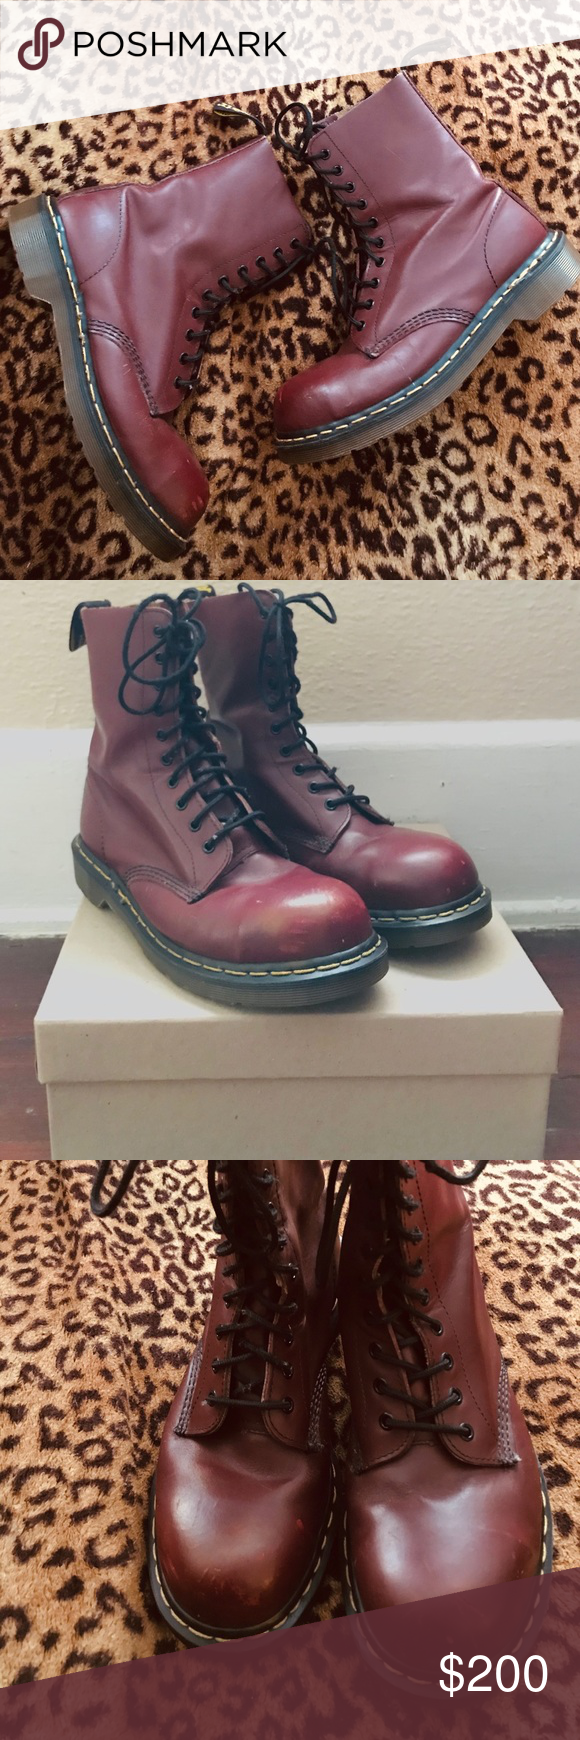 🍒 RARE! Vintage 90s Dr Martens combat boots Wonderful rare 90's cherry red le…